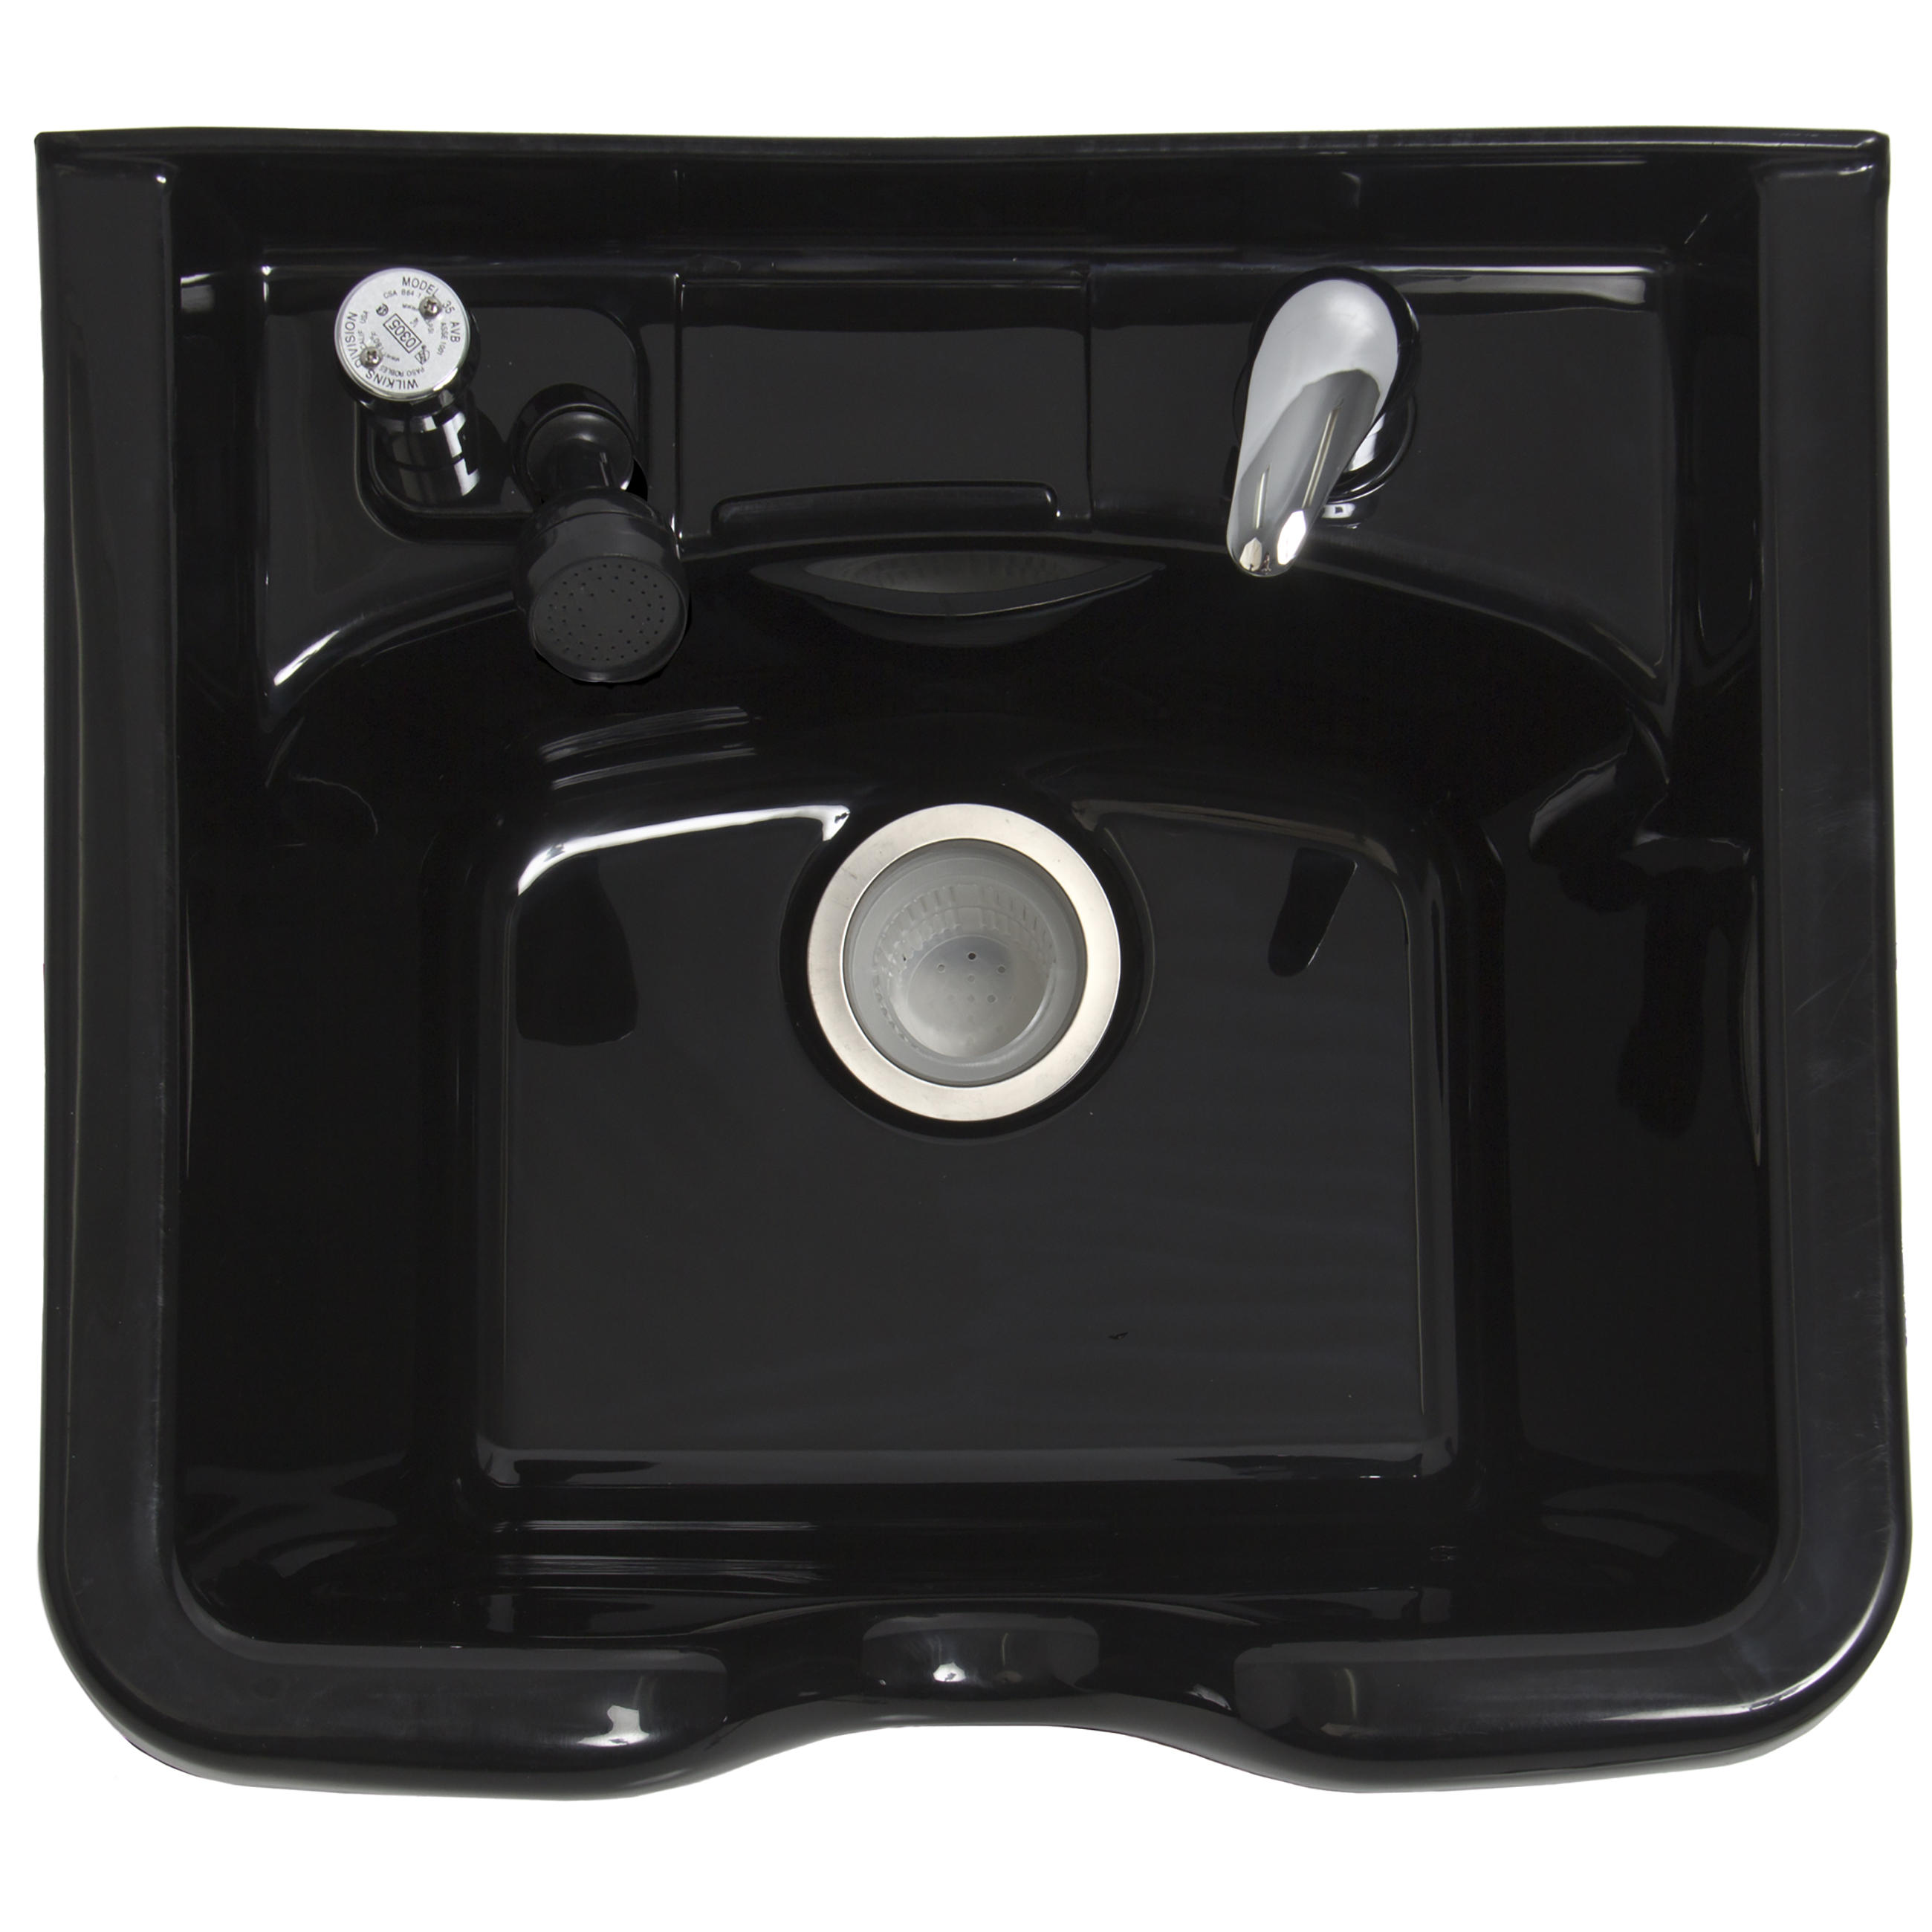 Shampoo Bowl Beauty Salon ABS Plastic Sink Bowl Barber Shop Mounting ...